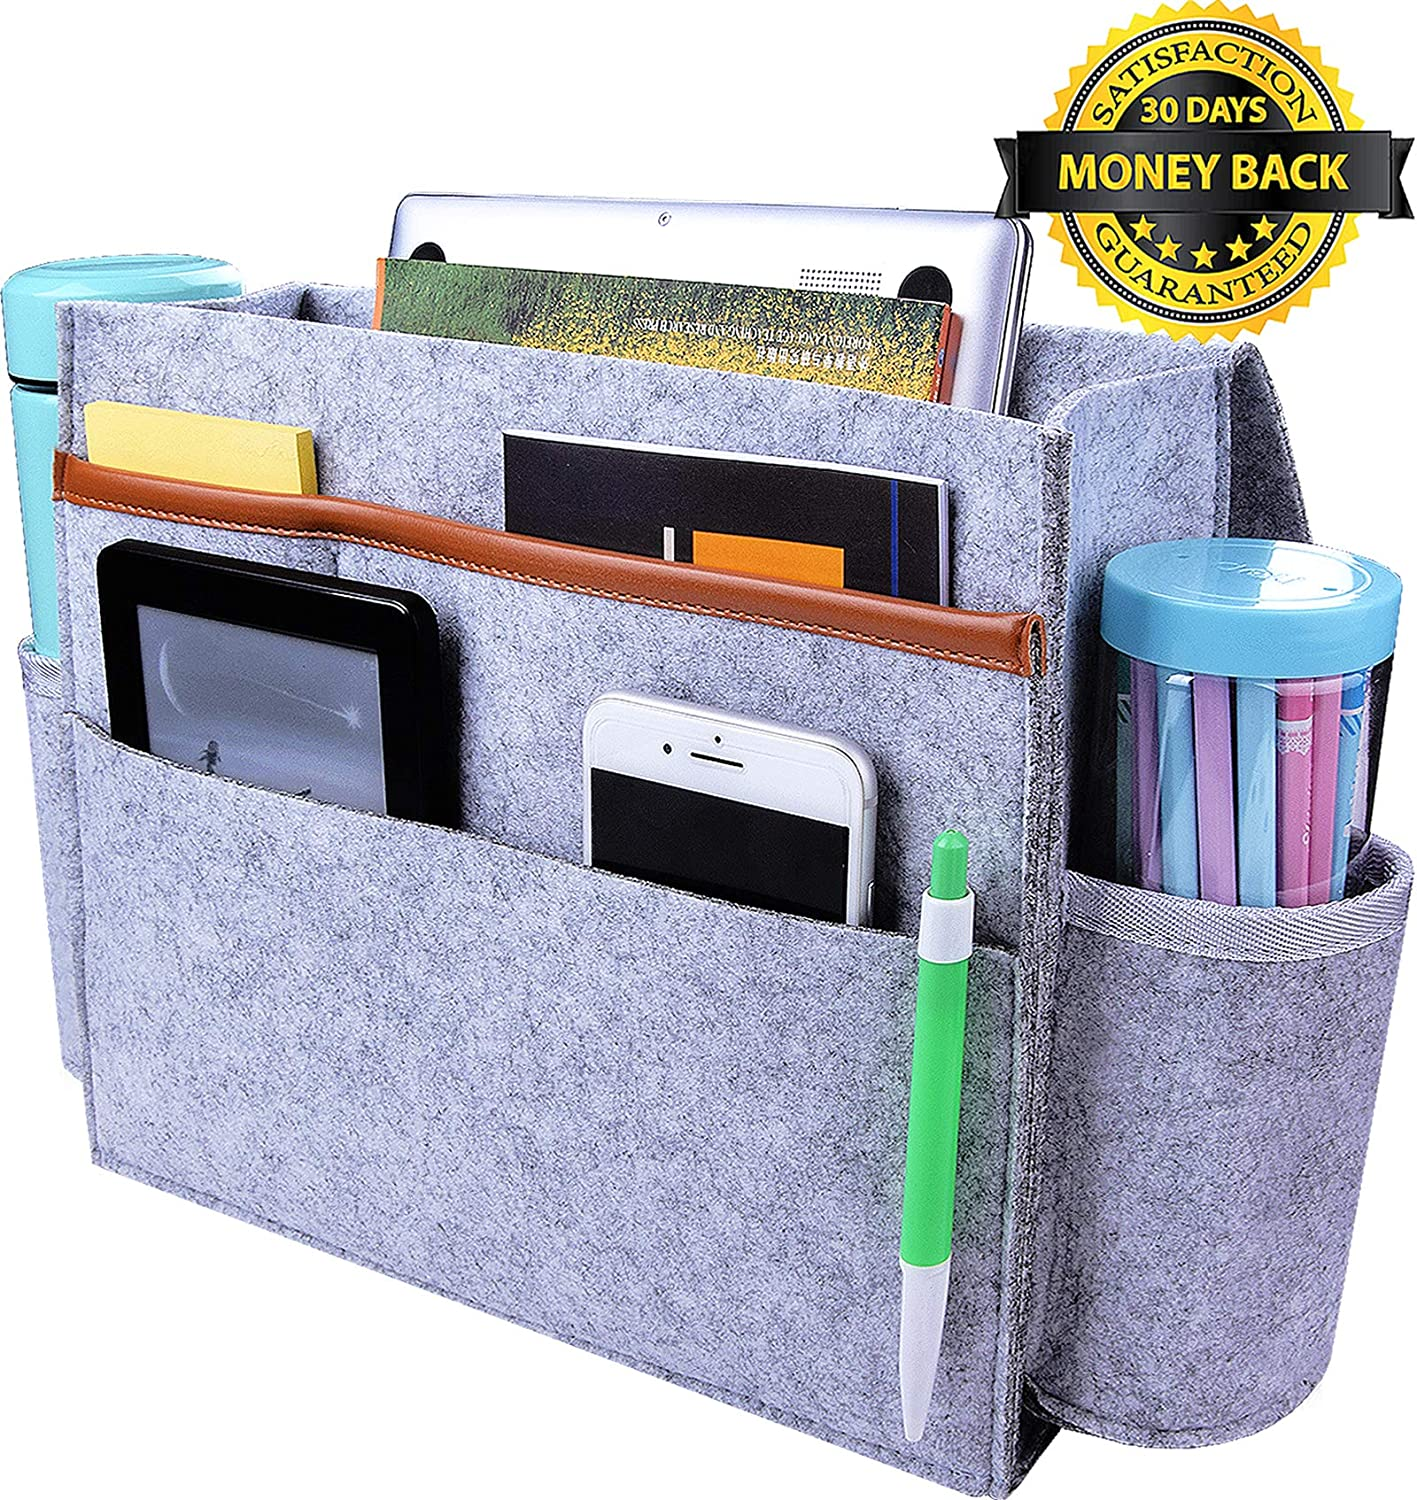 YOMFUN Bedside Caddy Organizer, Bedside Storage Organizer Upgraded 6 Pockets Large Sofa Bed Caddy with Cup Holder, Felt Hanging Organizer for Phone/Magazine/13 Laptop (Light Gray)